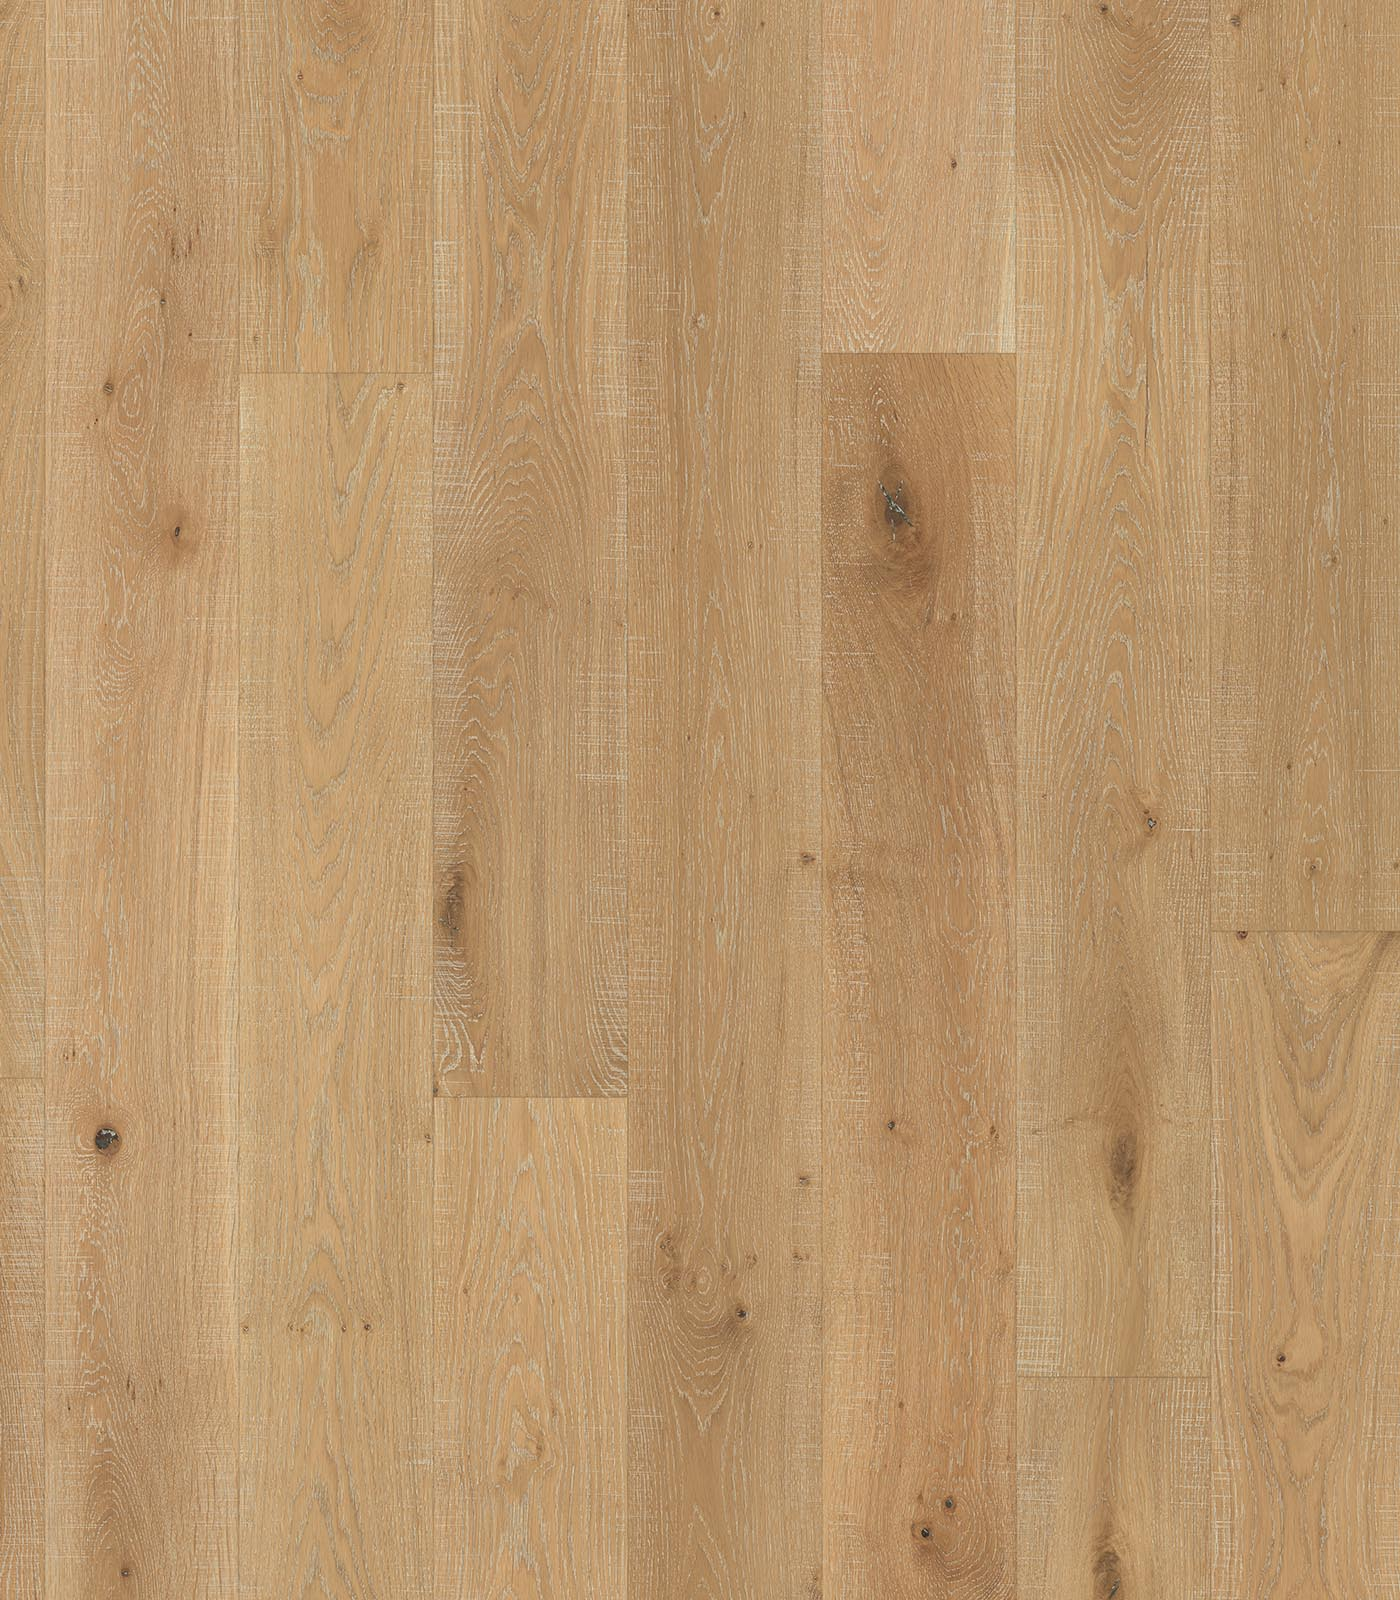 K2-European Oak Floors-Antique Collection-flat